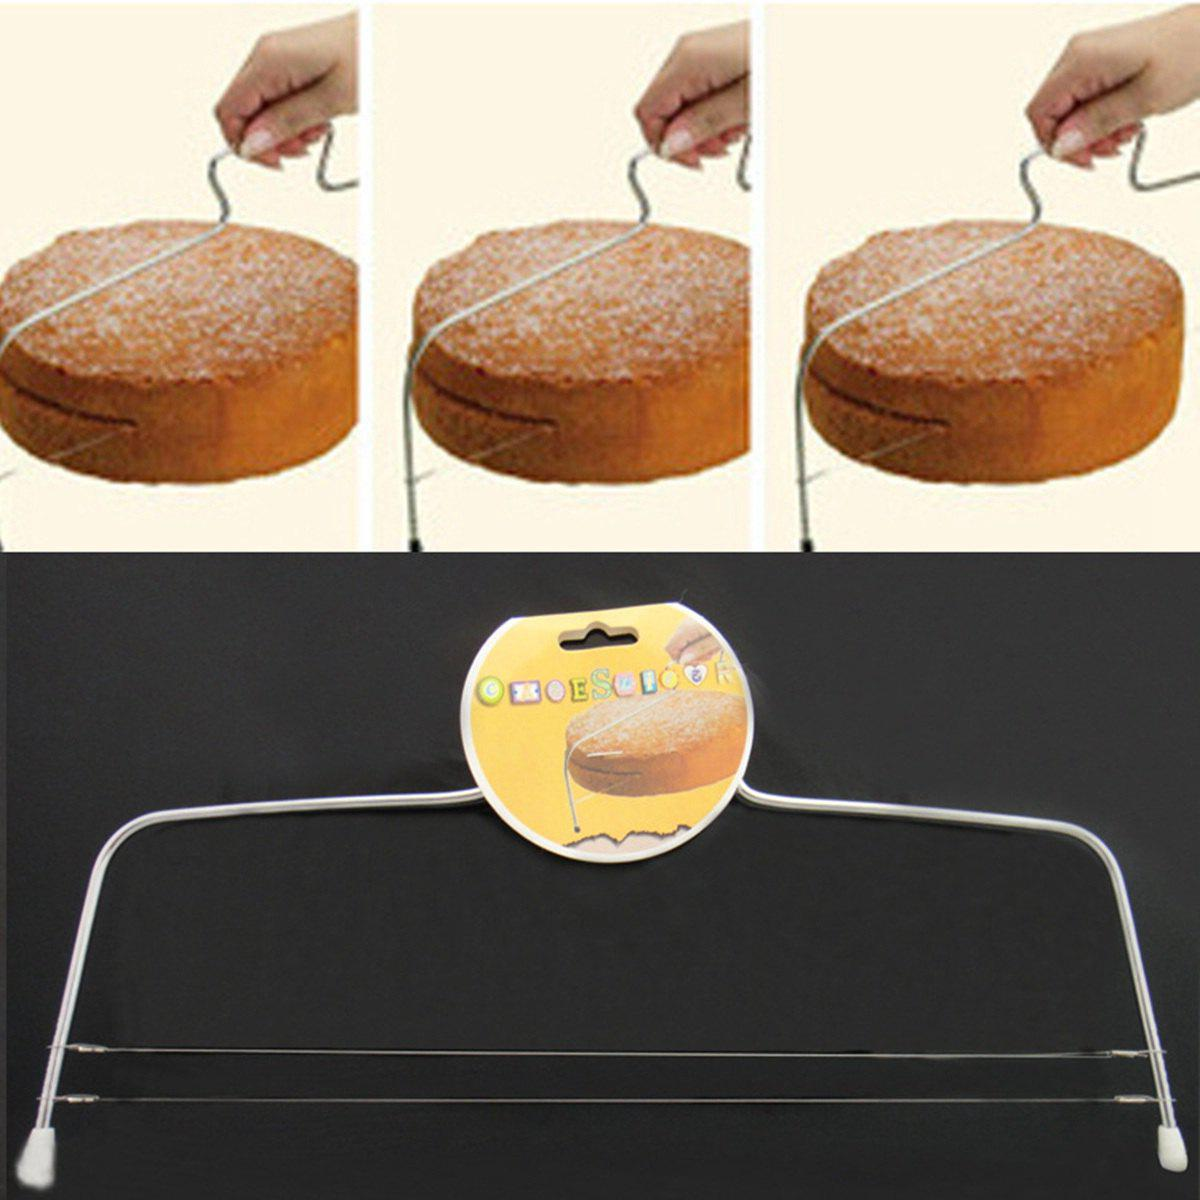 Latest Practical Stainless Steel Cake Cutter Printing Mold Bakeware Kitchen Accessories